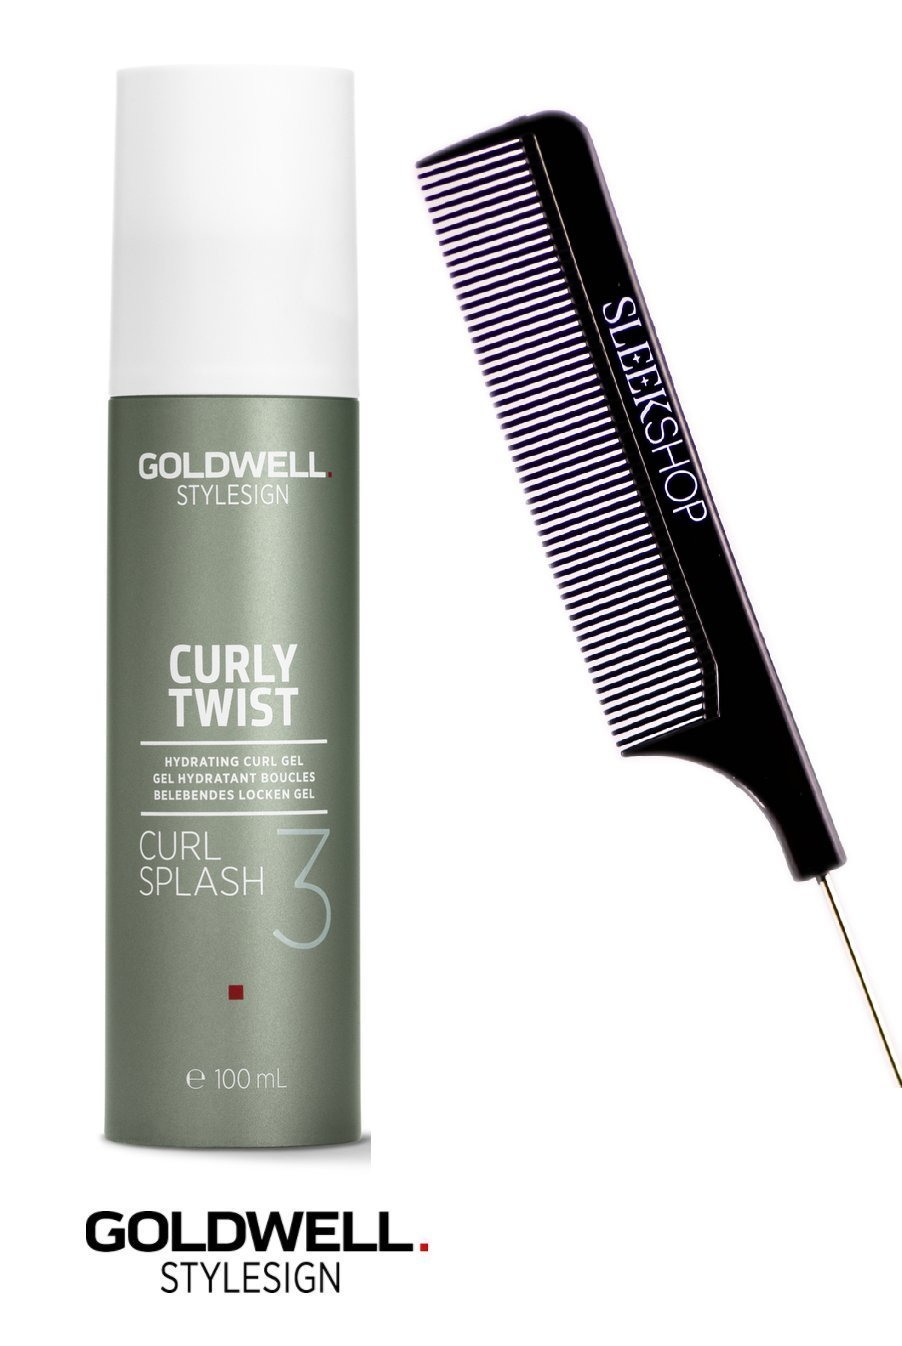 Goldwell Stylesign 3 Curly Twist Curl Splash Hydrating Curl Gel, 3.3 oz (with Sleek Steel Pin Tail Comb)